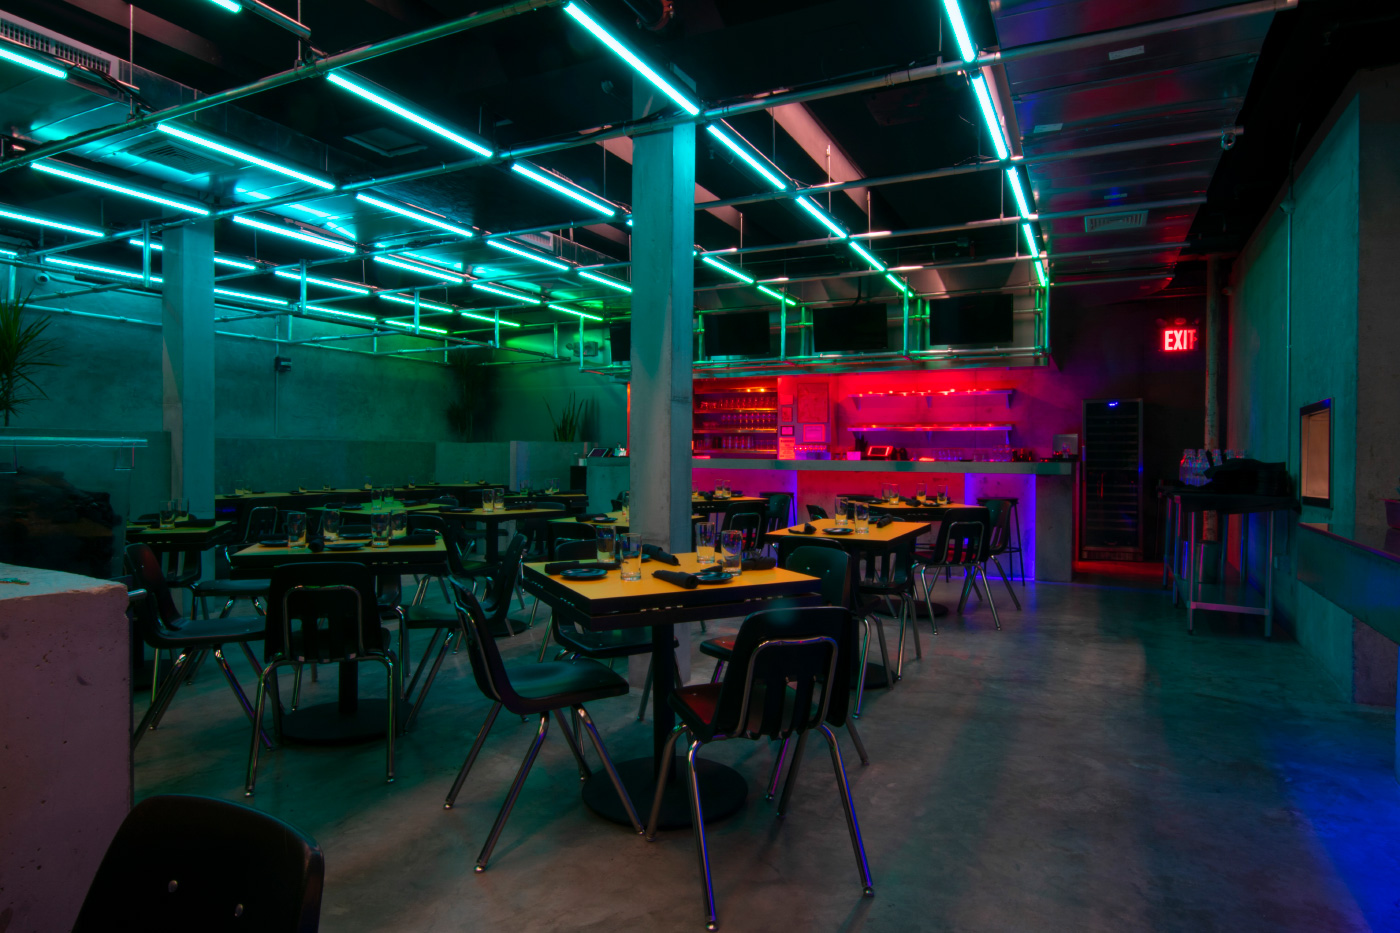 Photo of a neon-lit restaurant interior